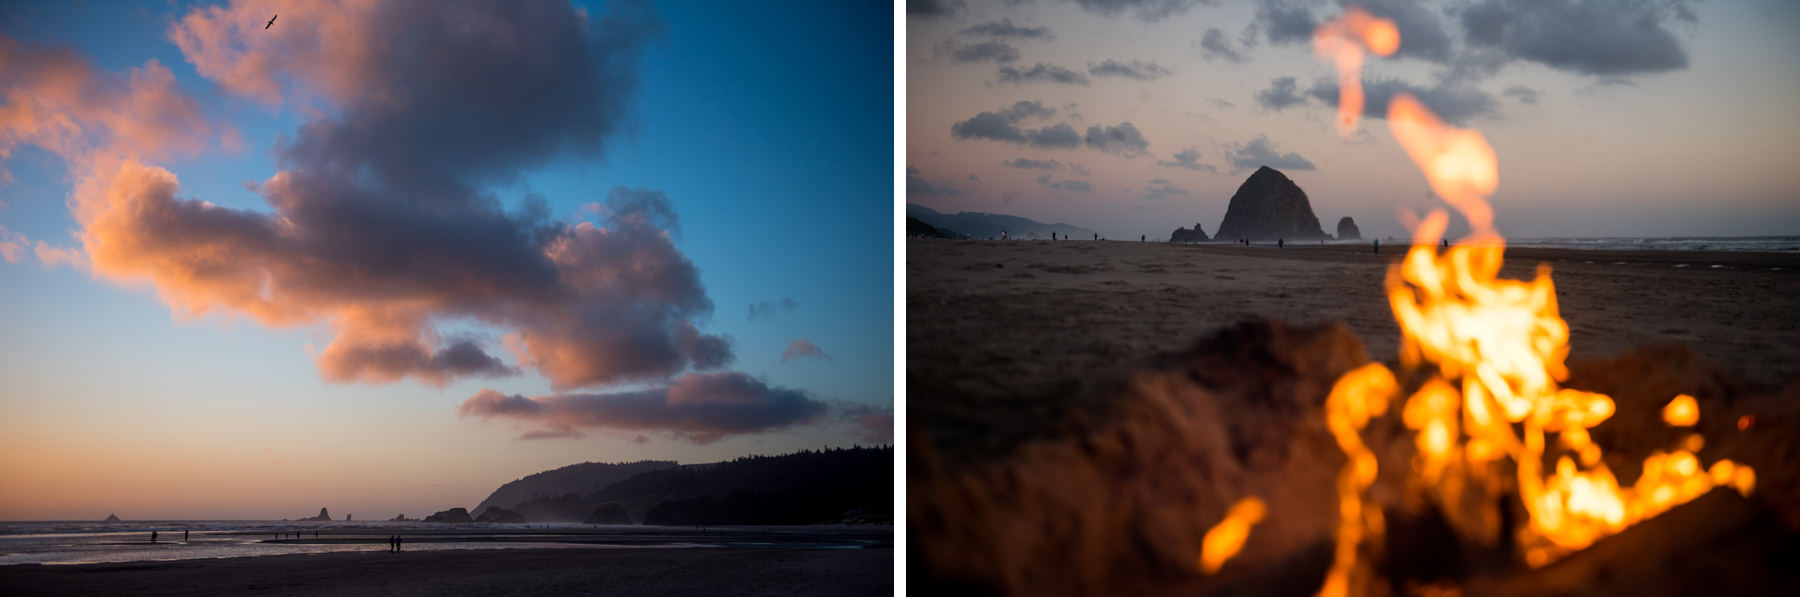 oregon coast sunset with campfire